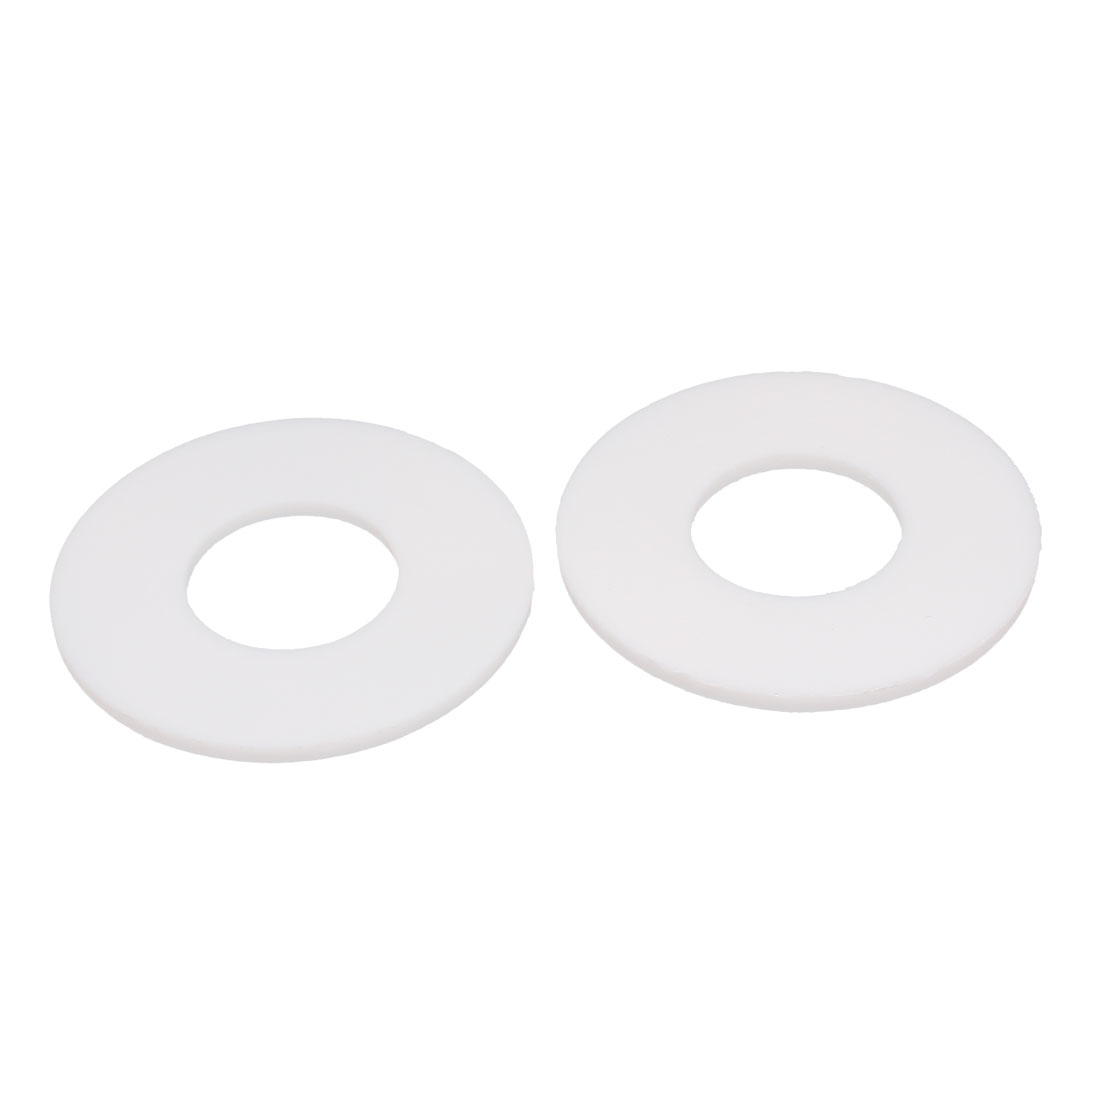 DN20 25x58x3mm PTFE Flange Gasket Sanitary Pipe Fitting Ferrules White 2pcs